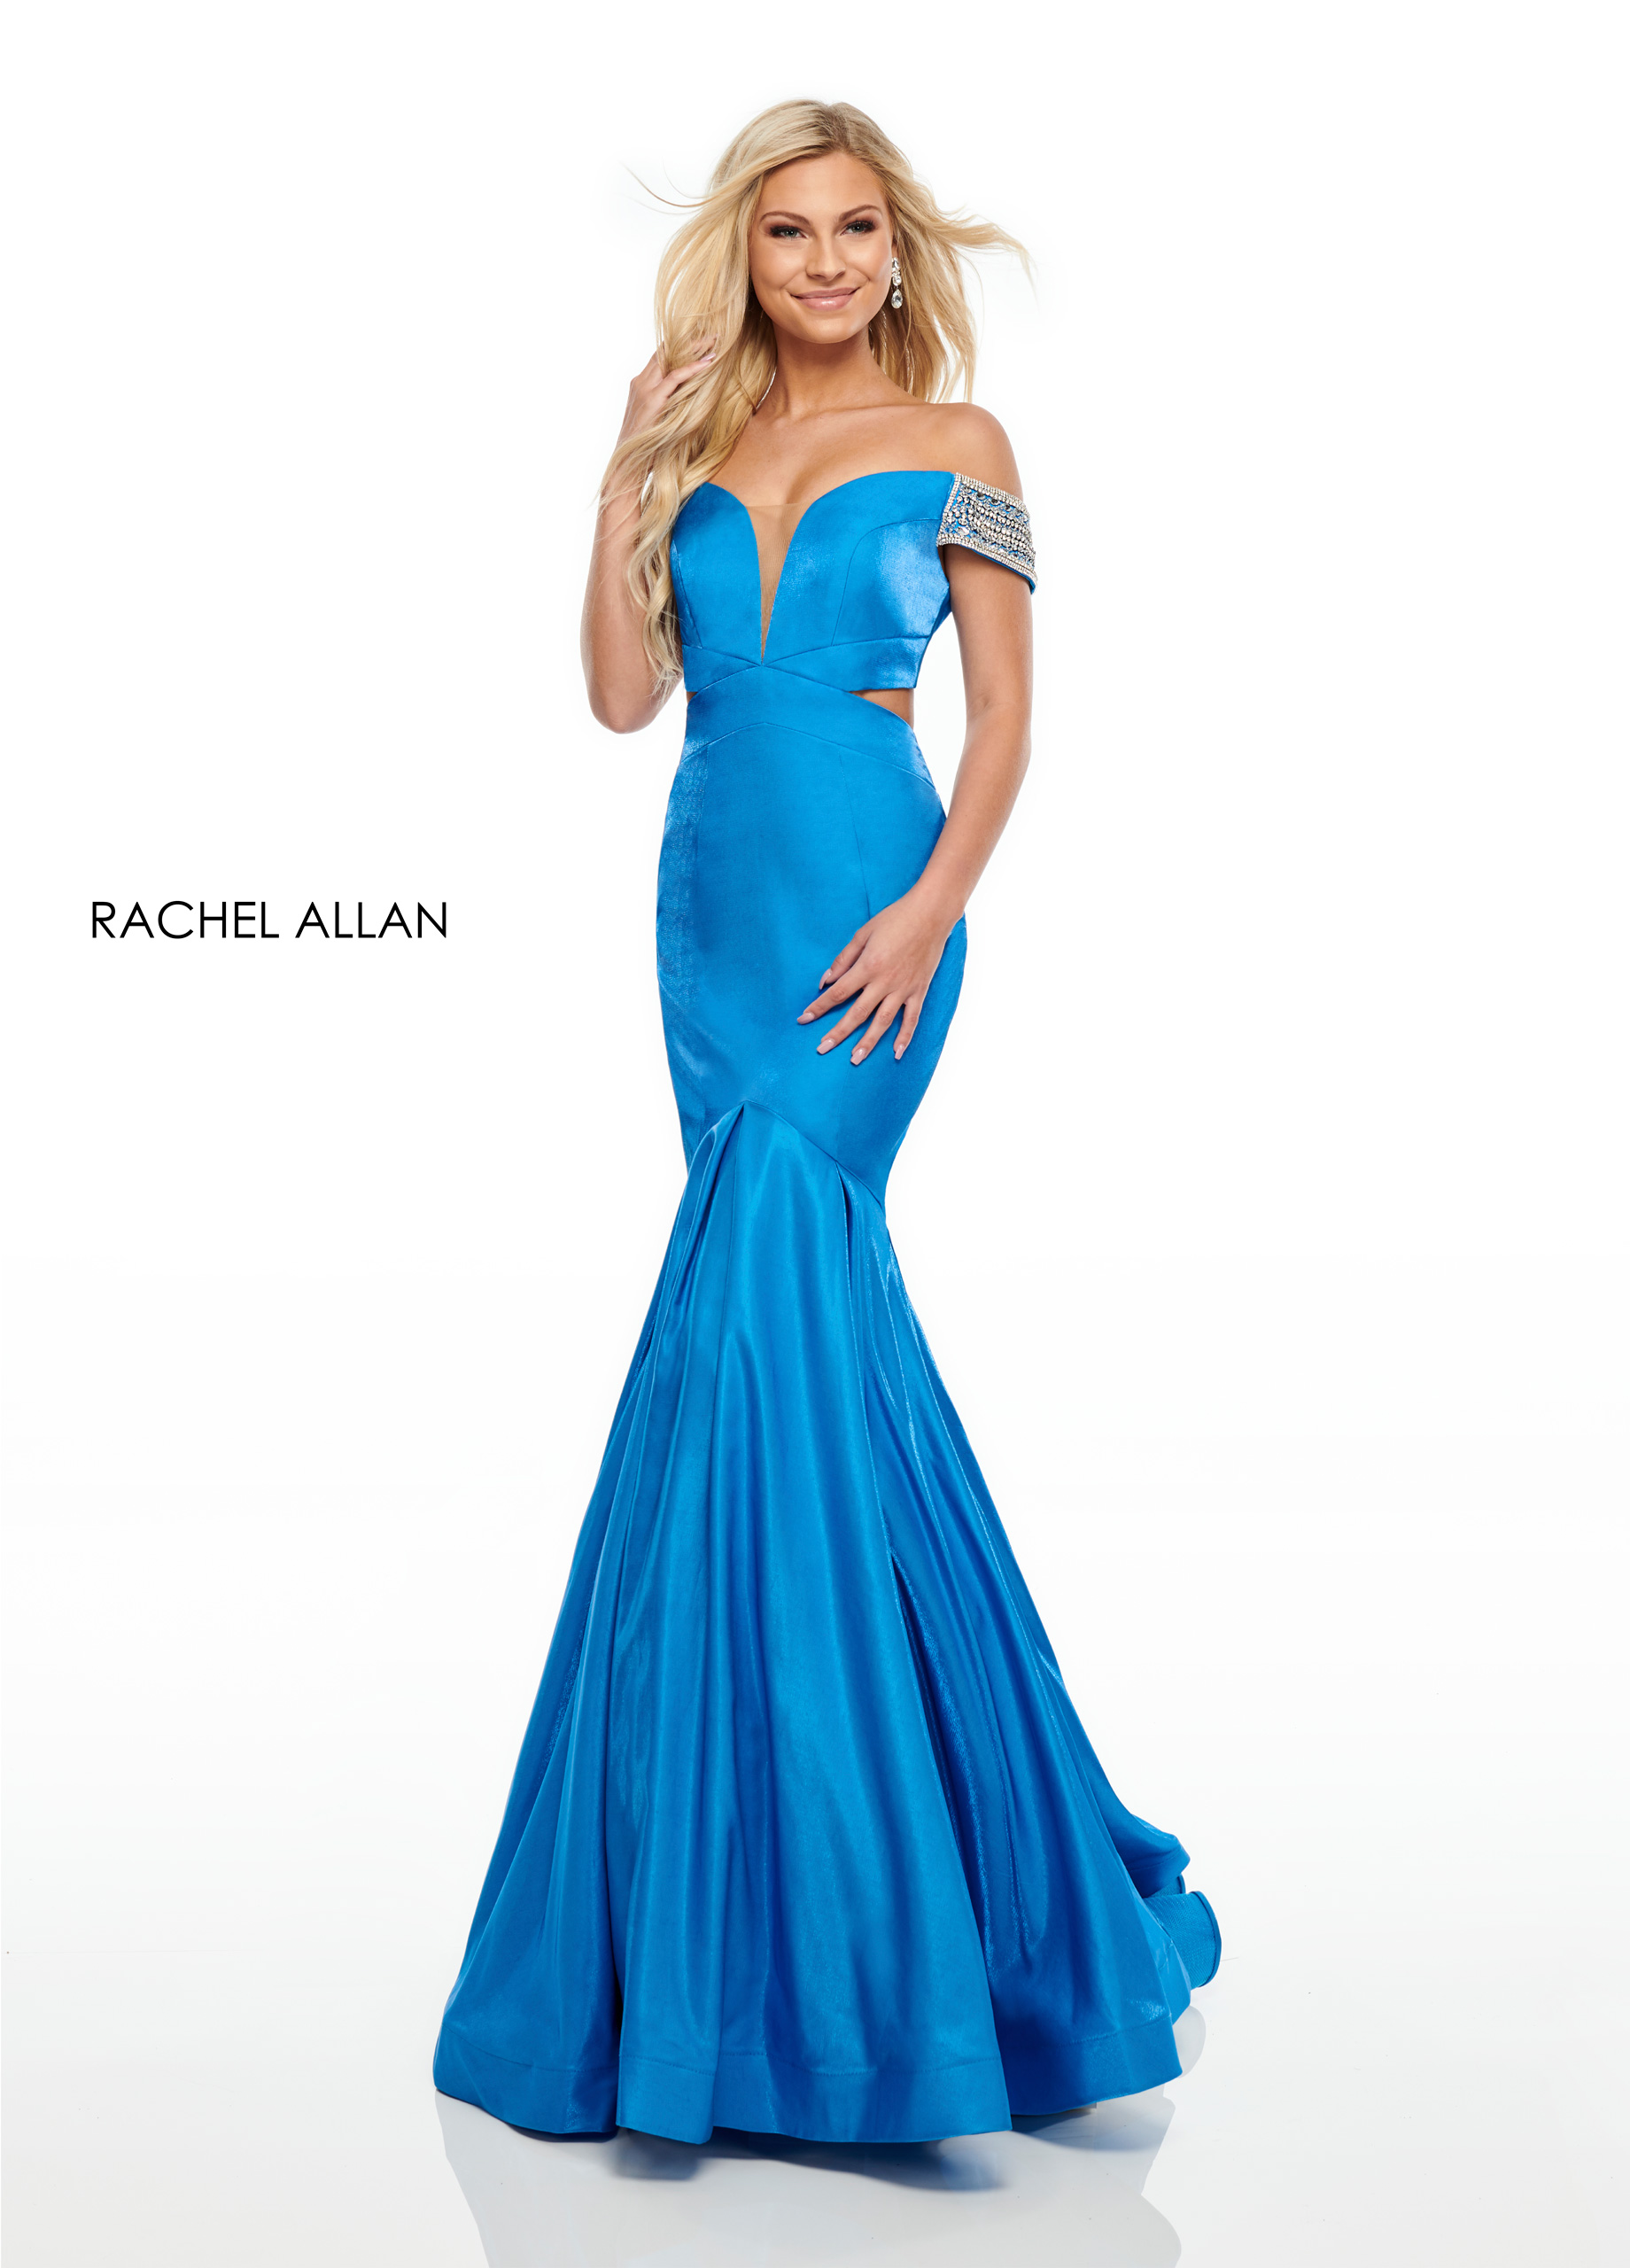 Off The Shoulder Mermaid Prom Dresses in Blue Color